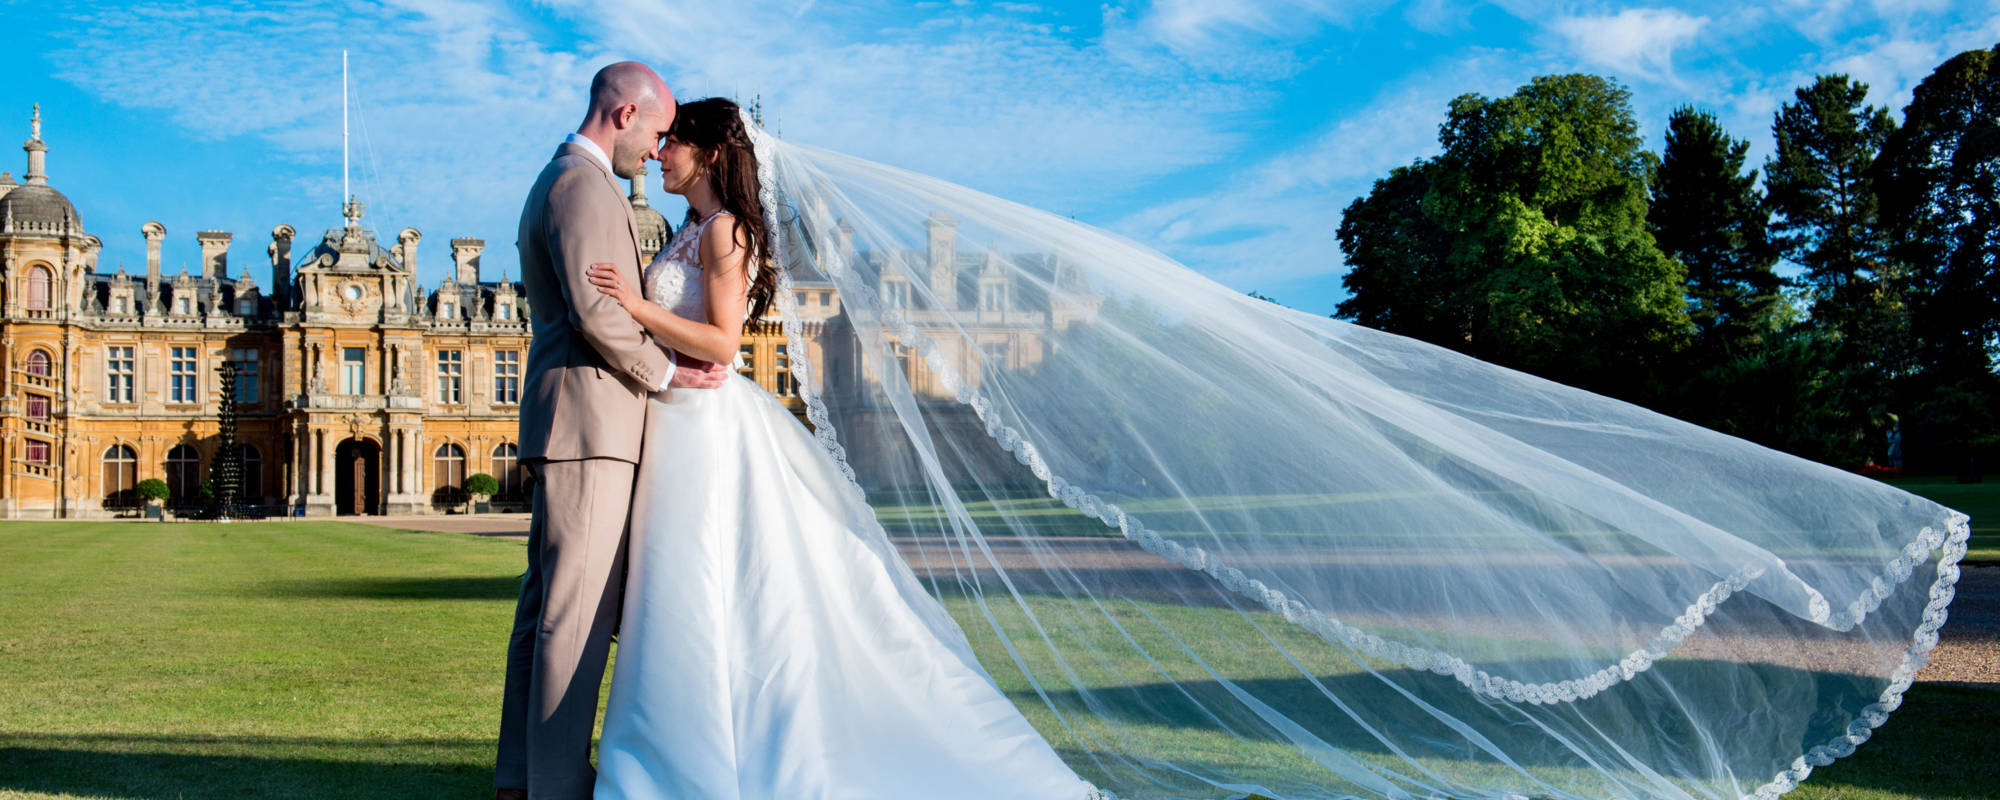 Married couple at Waddesdon